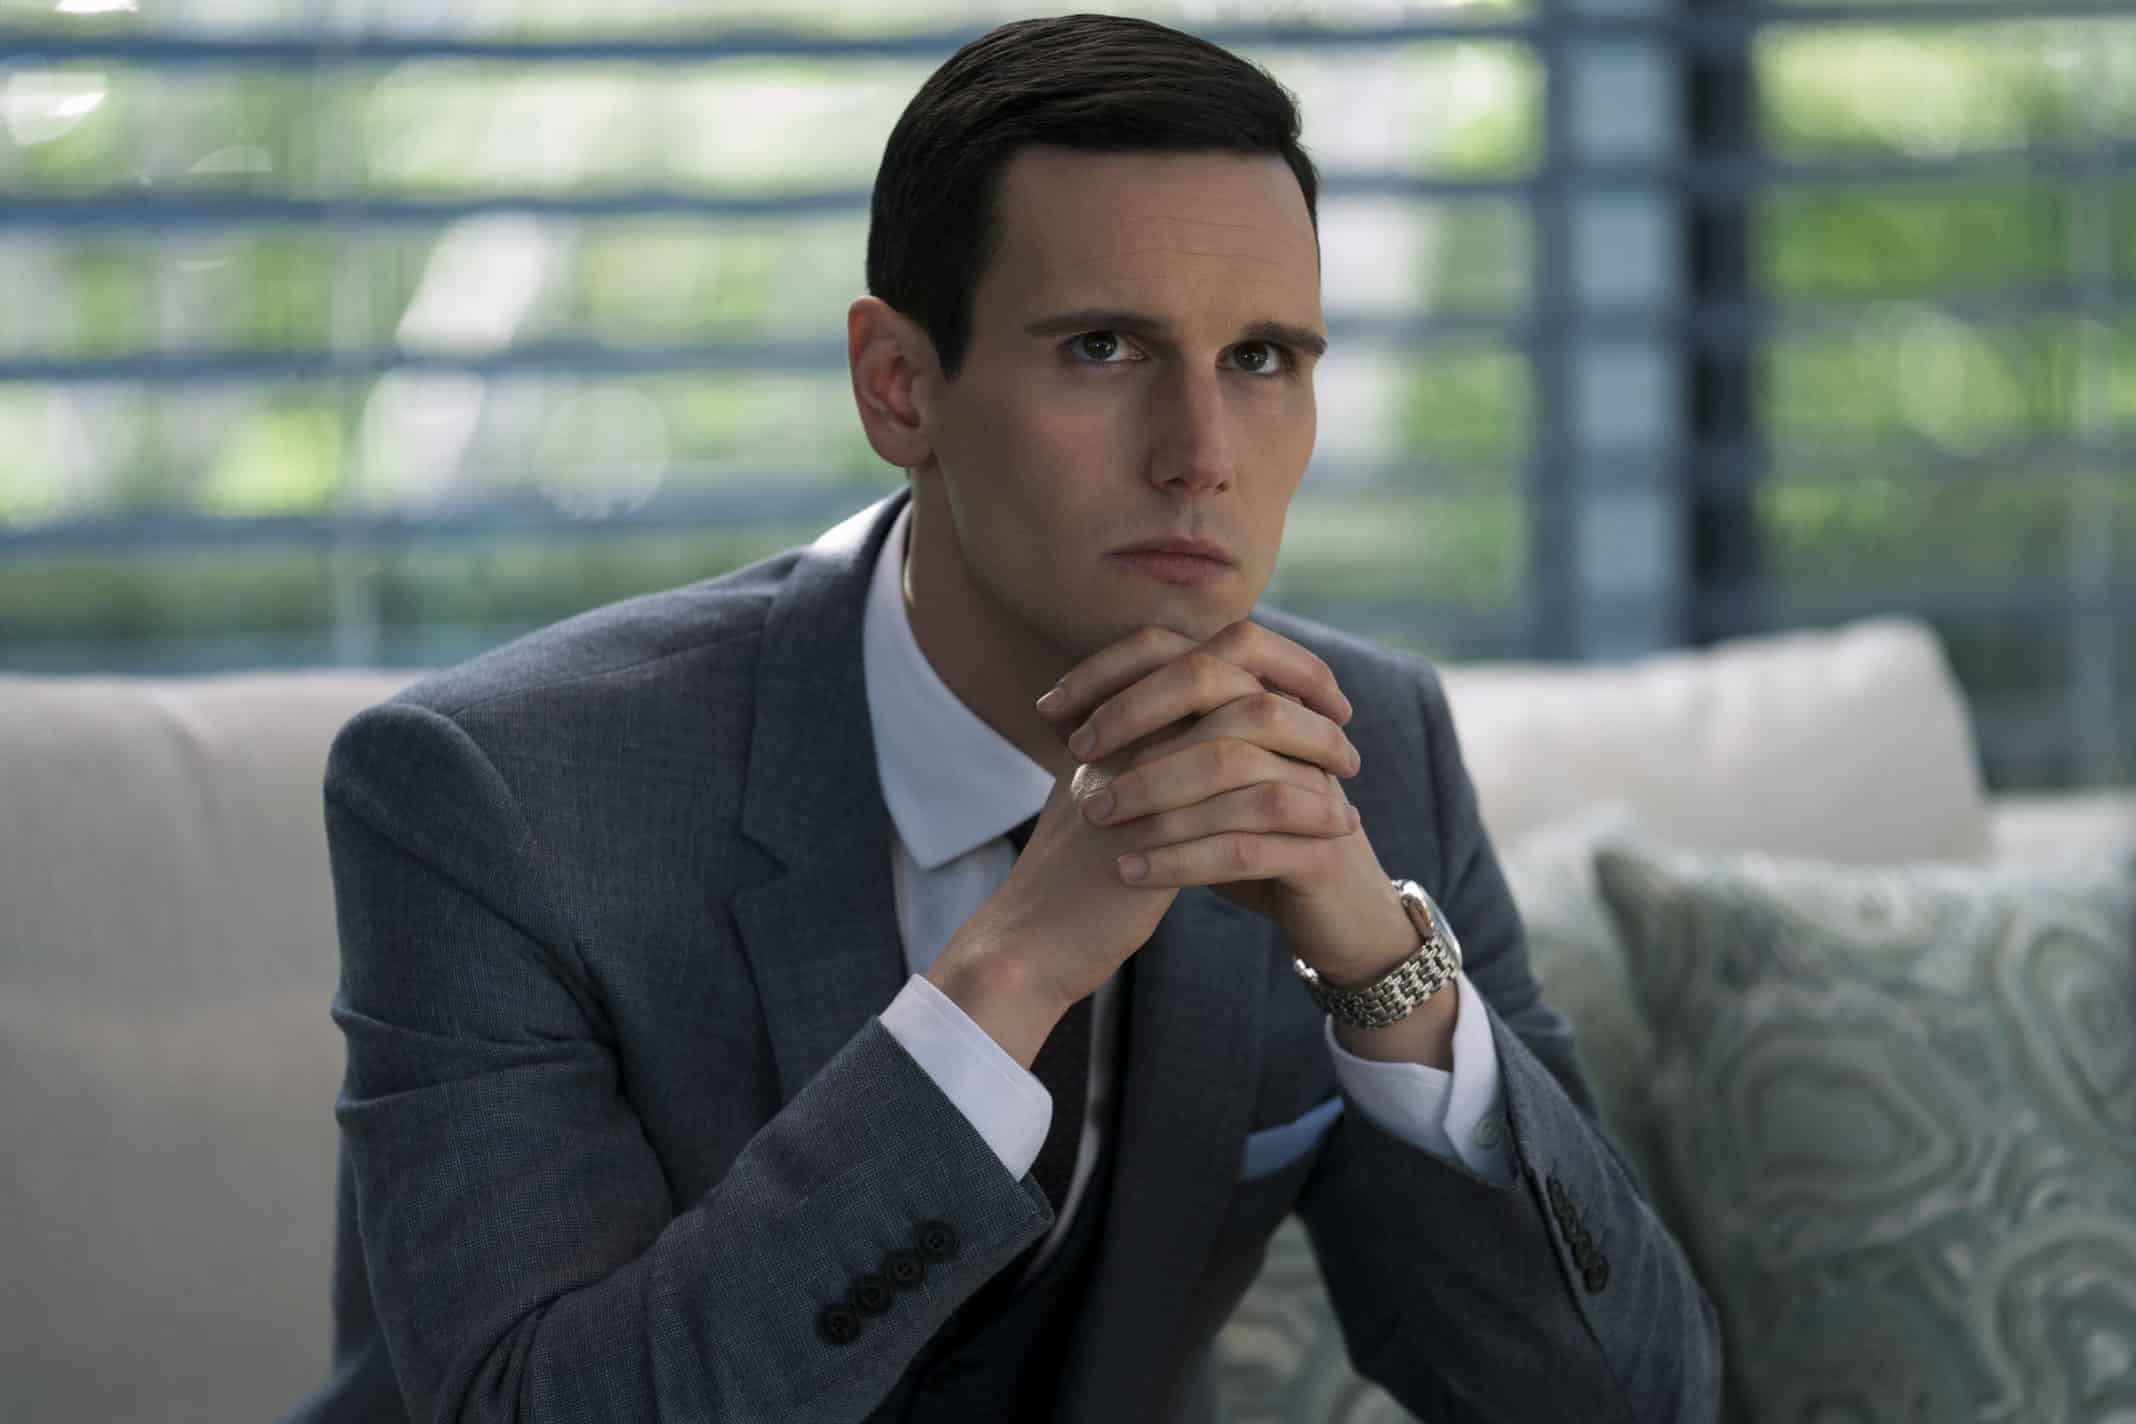 Thomas Christie (Cory Michael Smith) sitting in a corporate office.